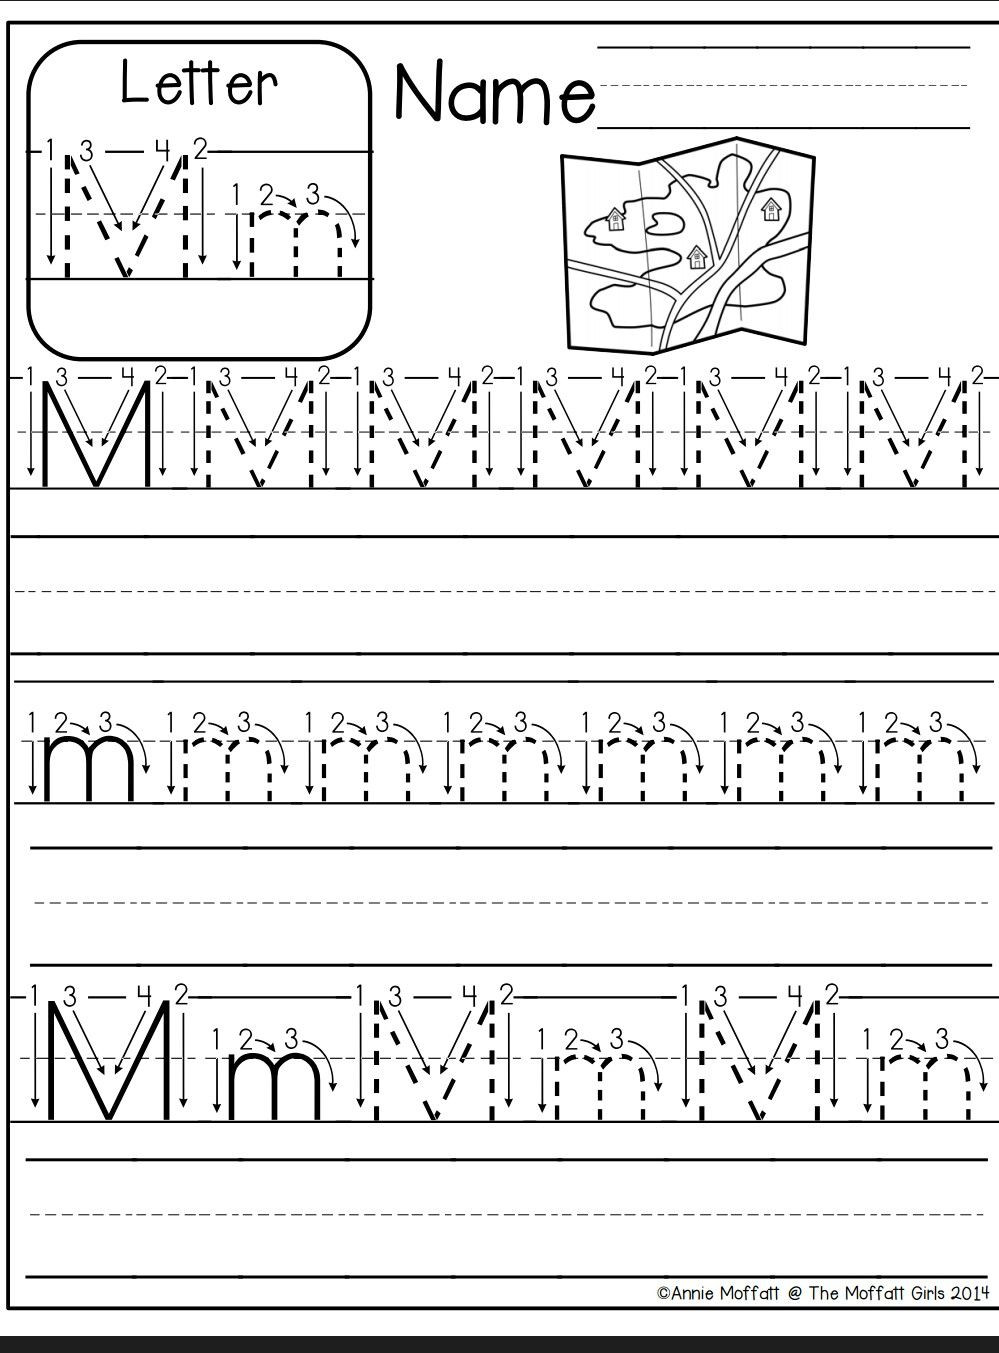 Letter M Worksheets Preschool Letter M Worksheet